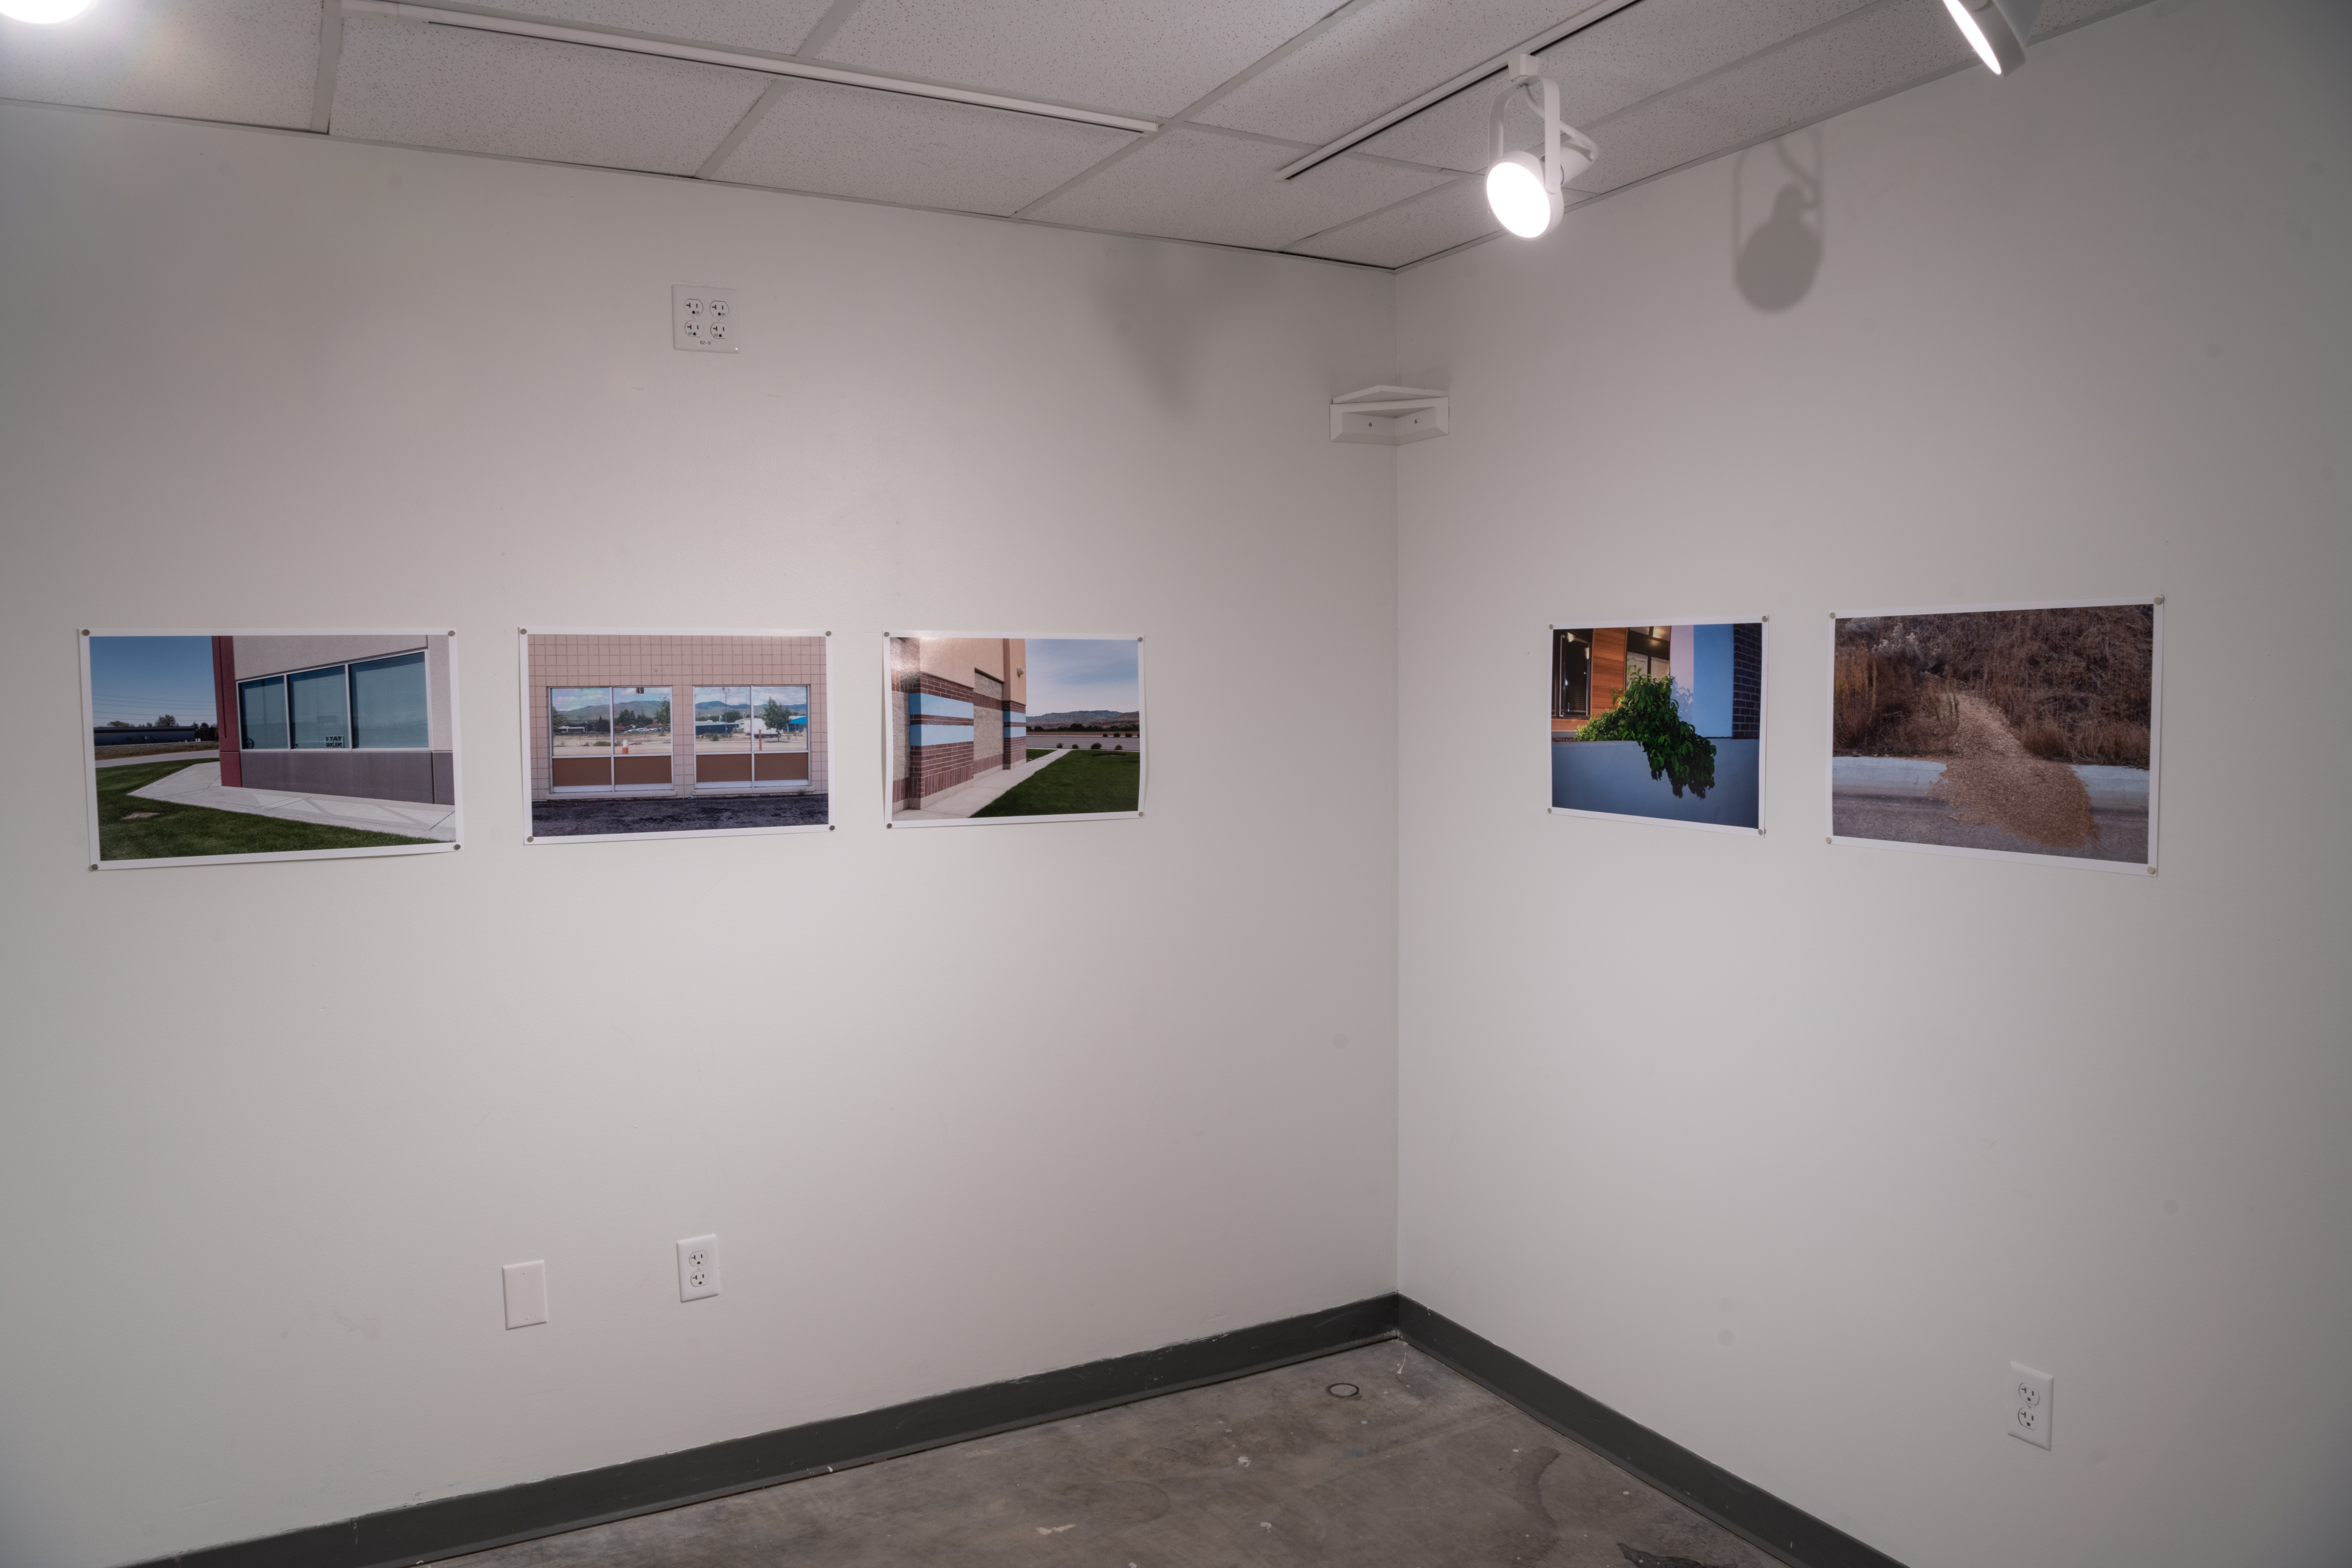 Gallery installation of Untitled 14 small prints showing 3 photos at left and 2 at right.